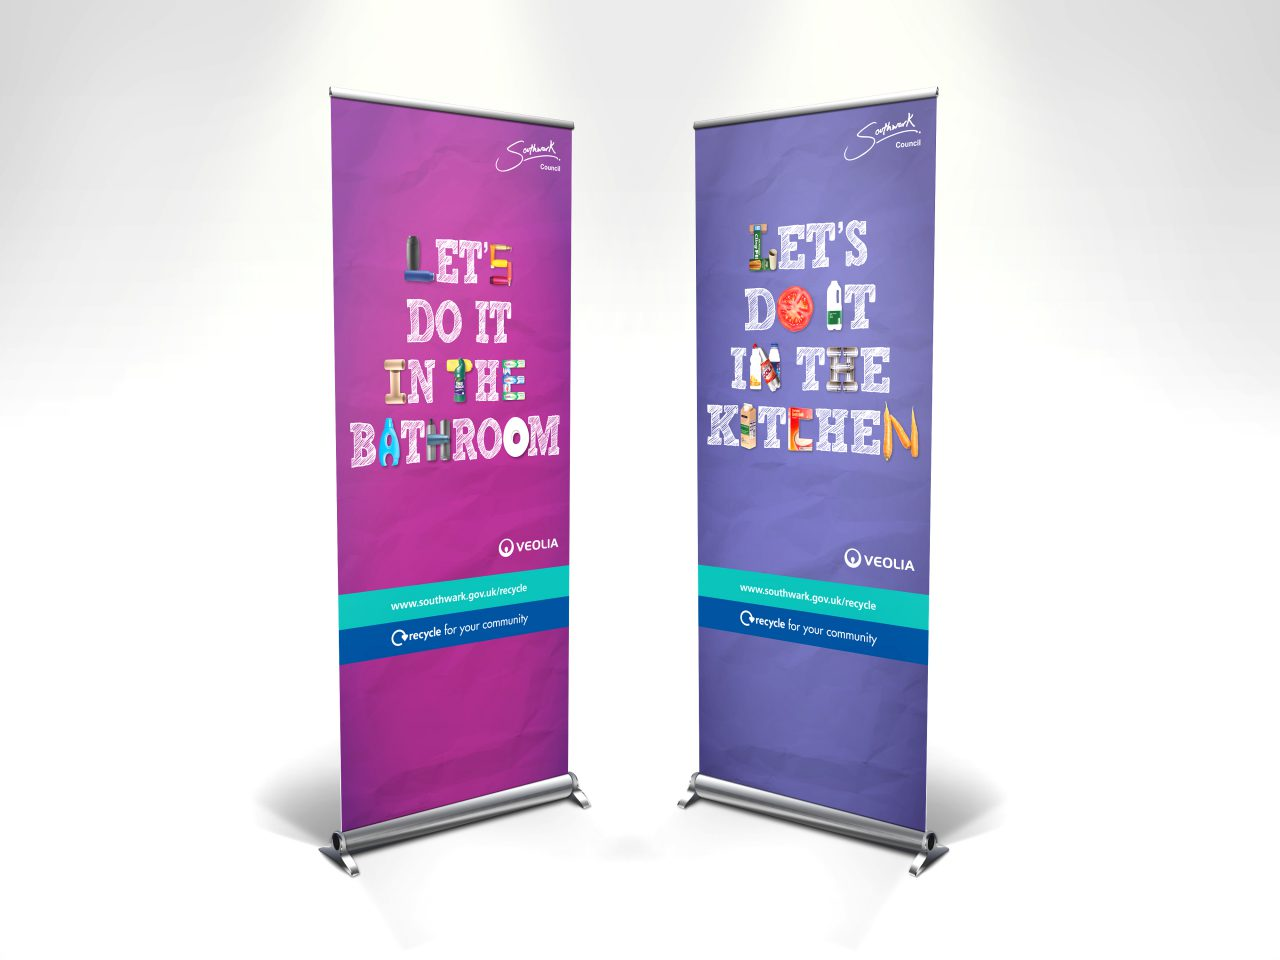 Veolia Southwark pull up banners